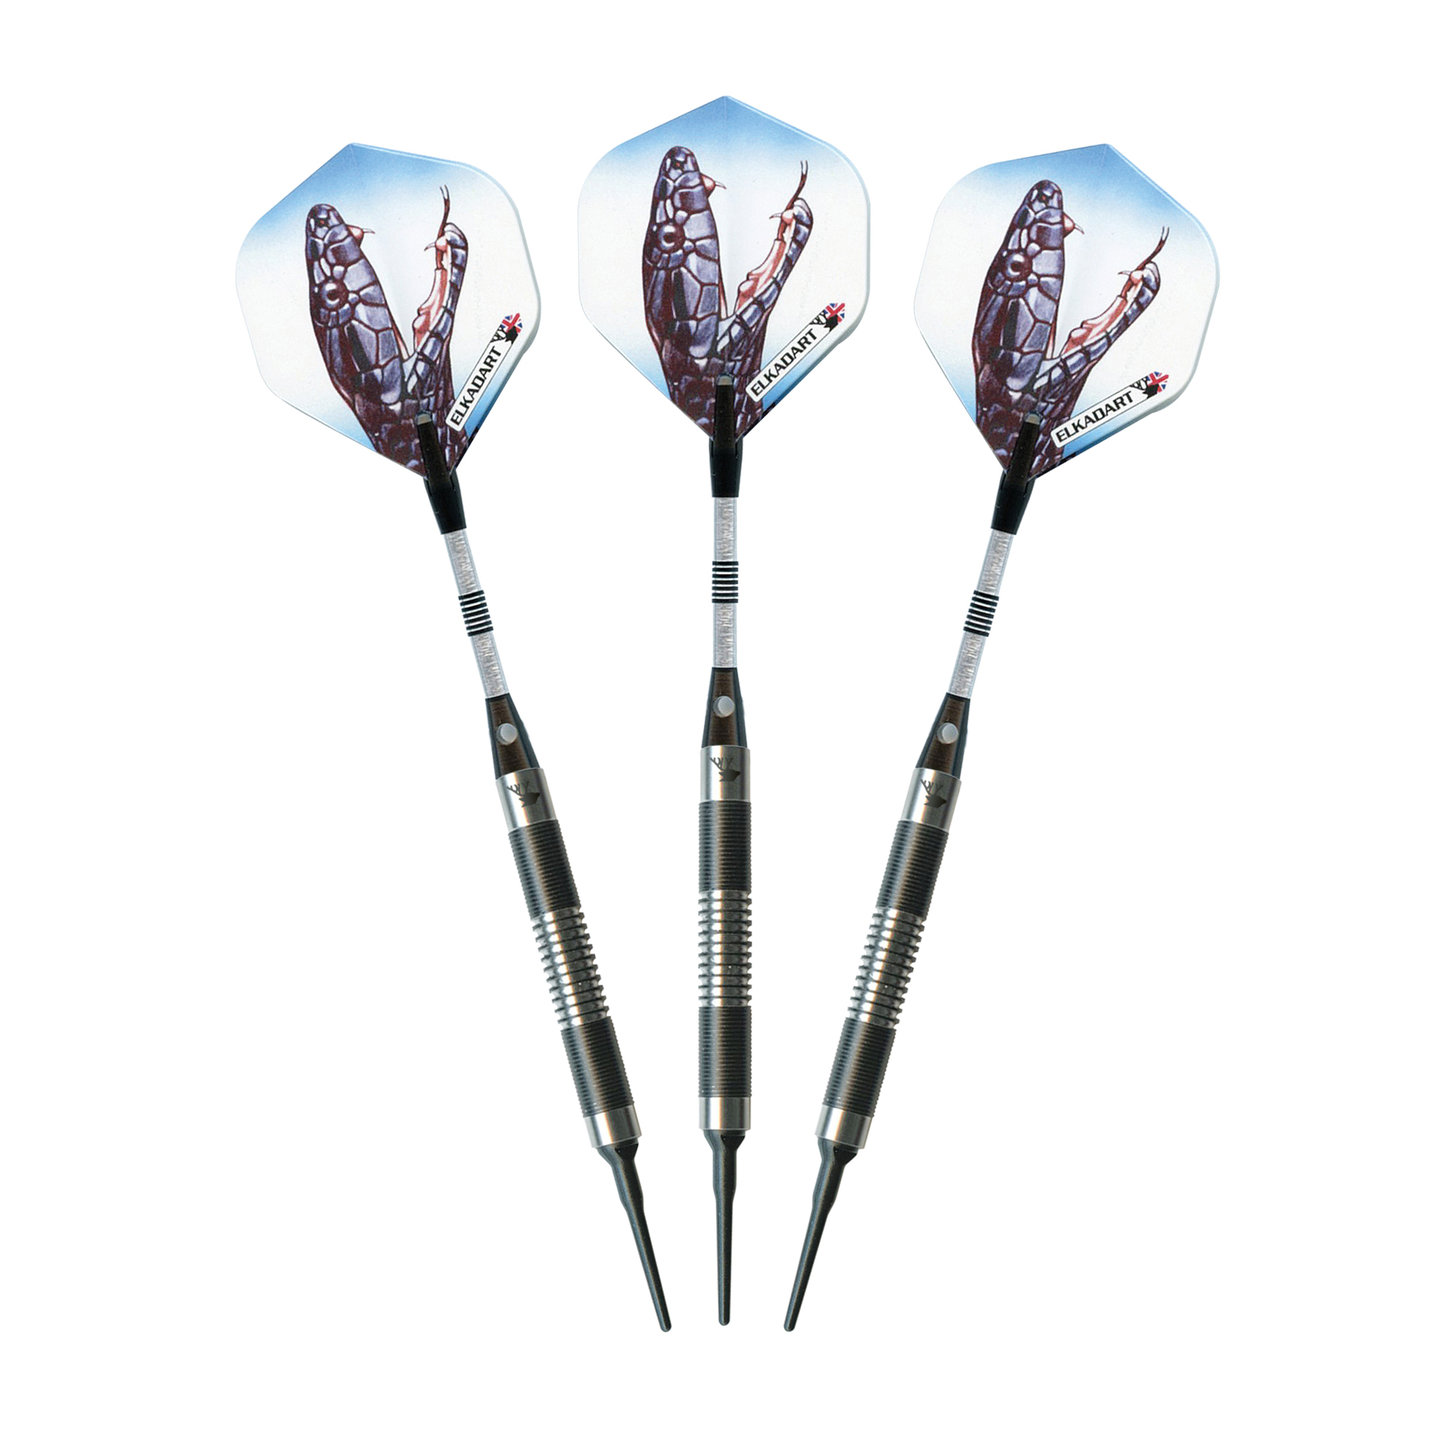 Elkadart Black Mamba Tungsten Soft Tip Darts, Thin Barrel, 16g